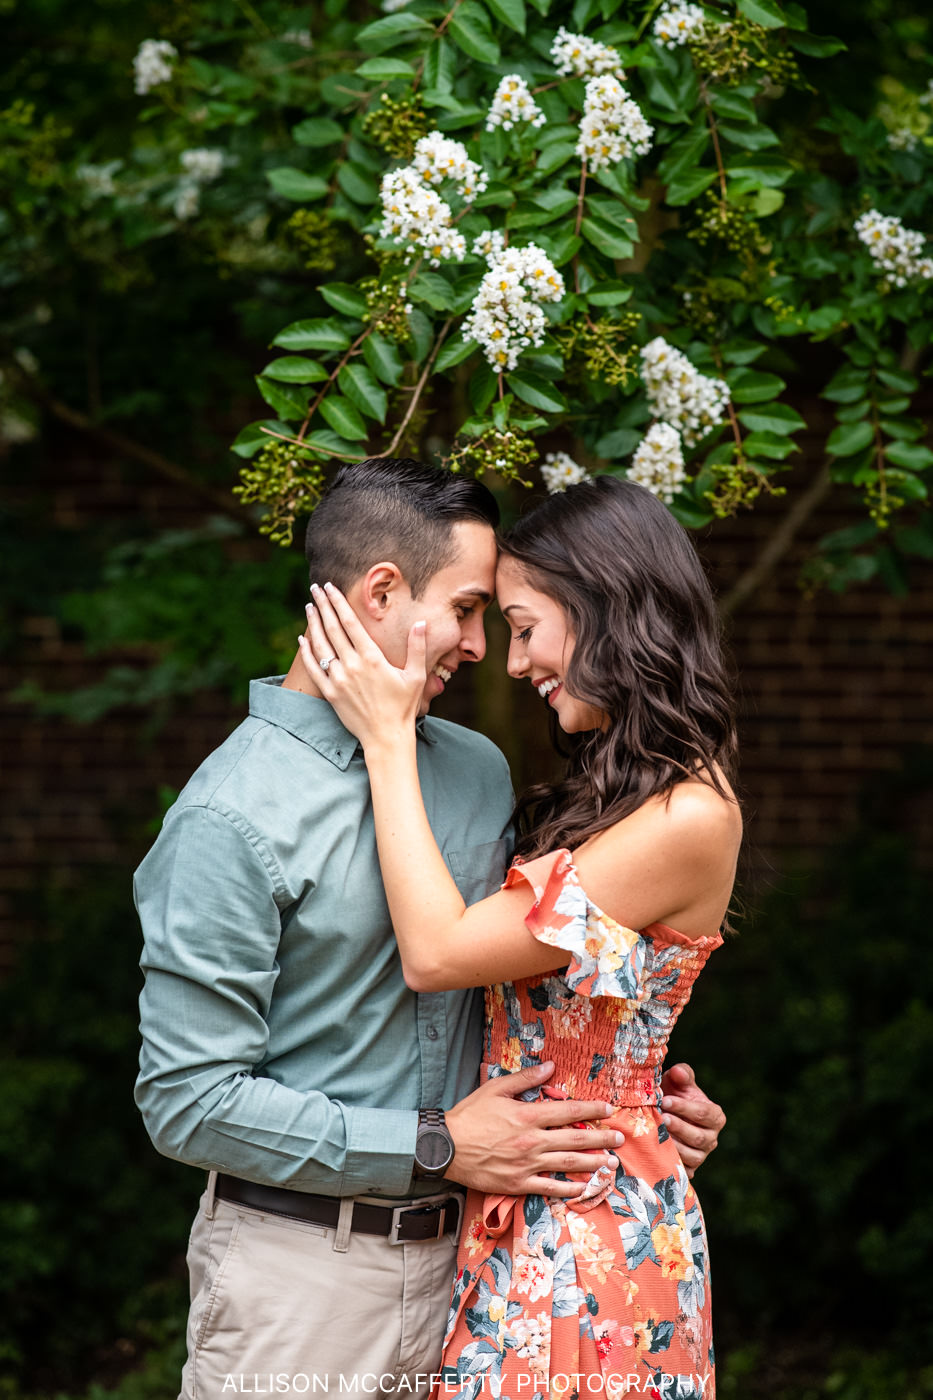 South Jersey Engagement Session Locations